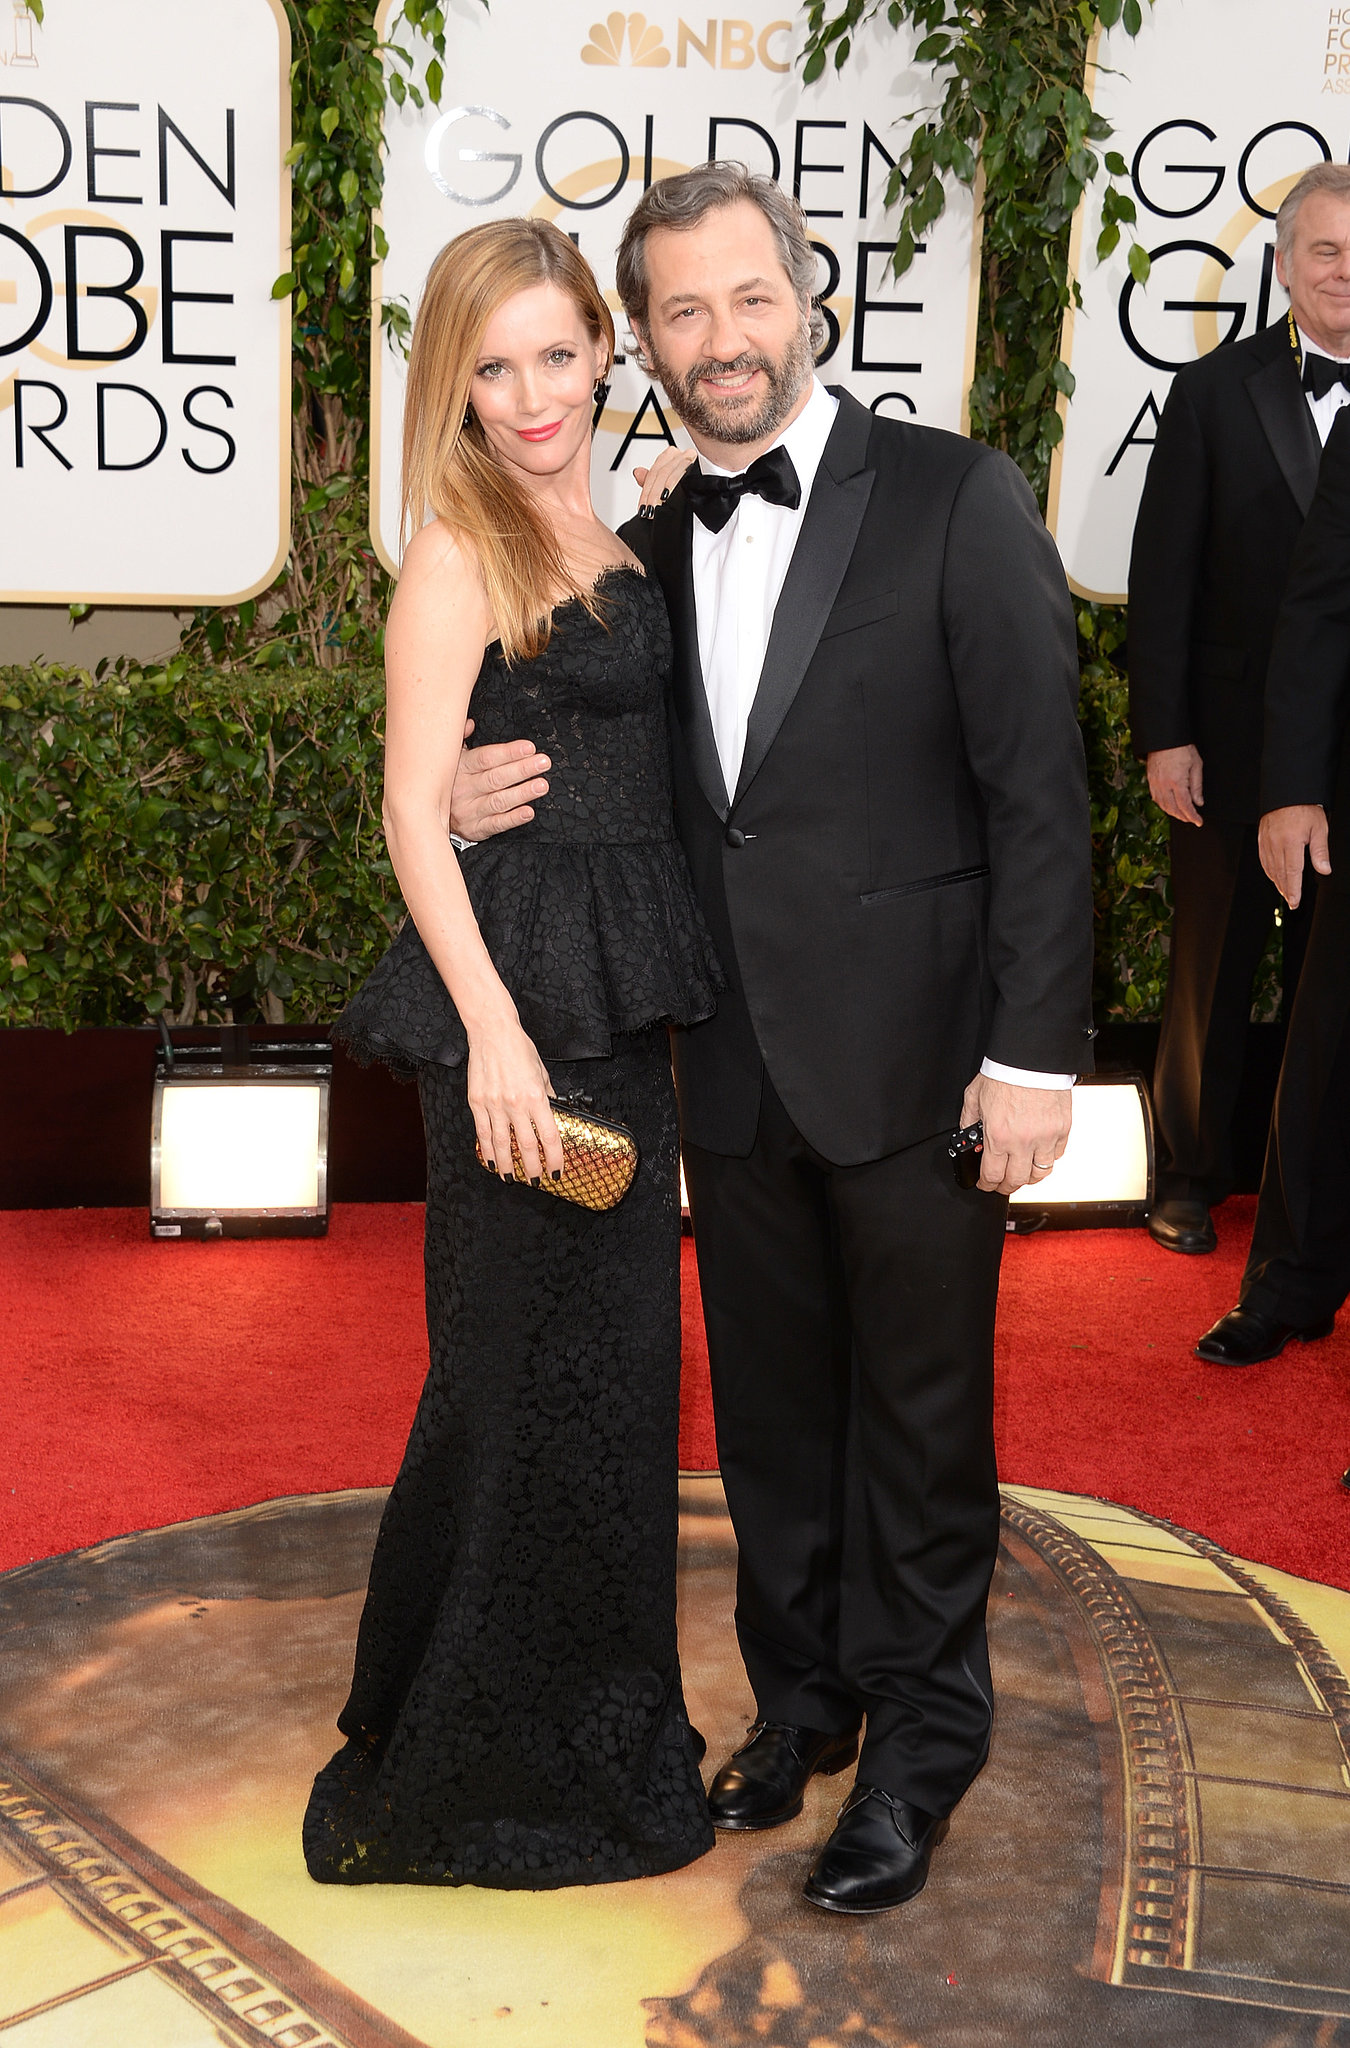 Leslie Mann and Judd Apatow coupled up at the Golden Globes.